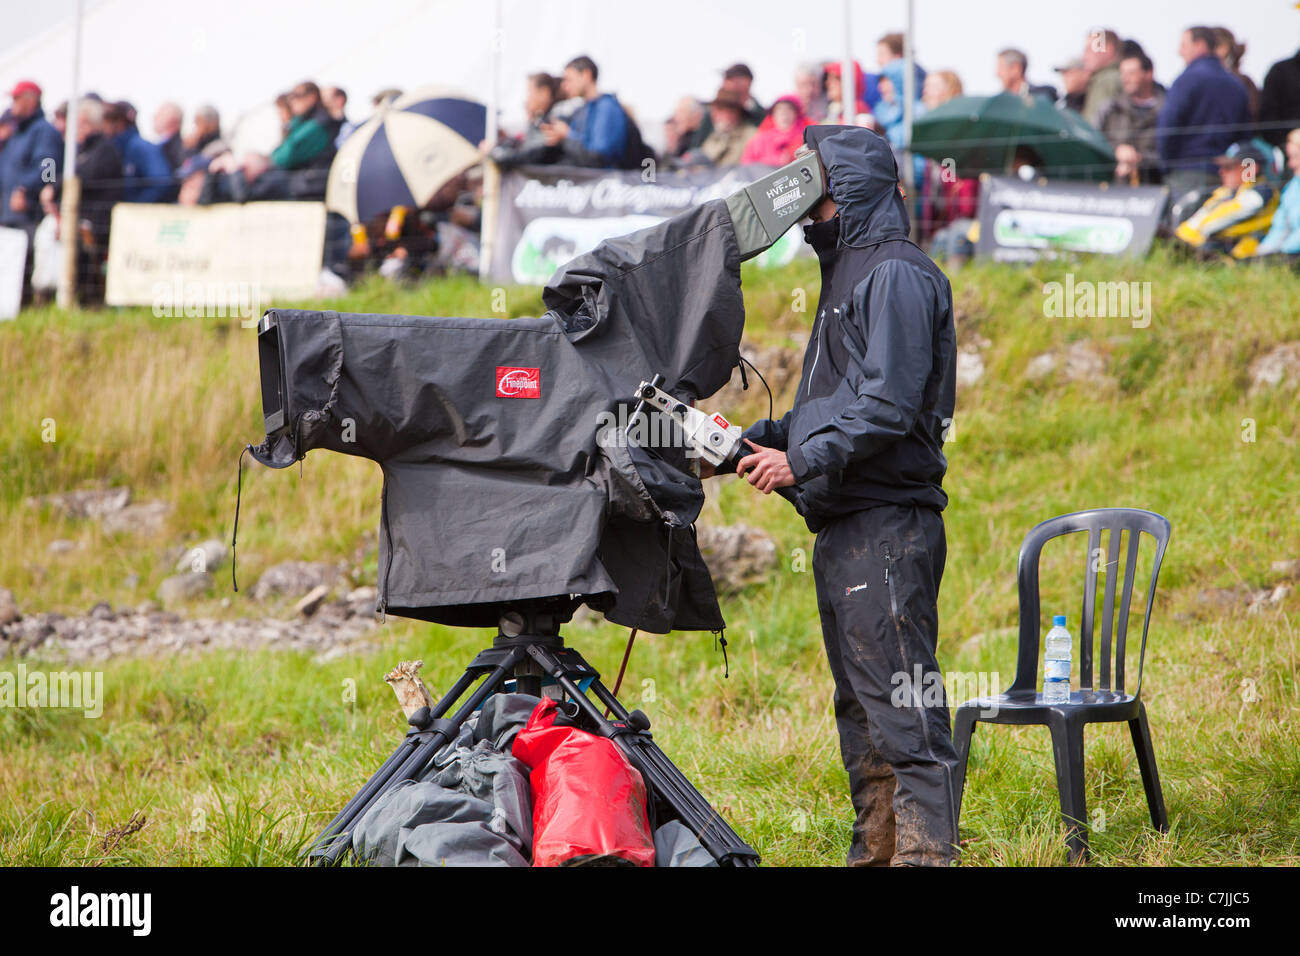 A man filming at the World Sheep Dog Trials at Lowther, Penrith, cumbria, UK. Stock Photo